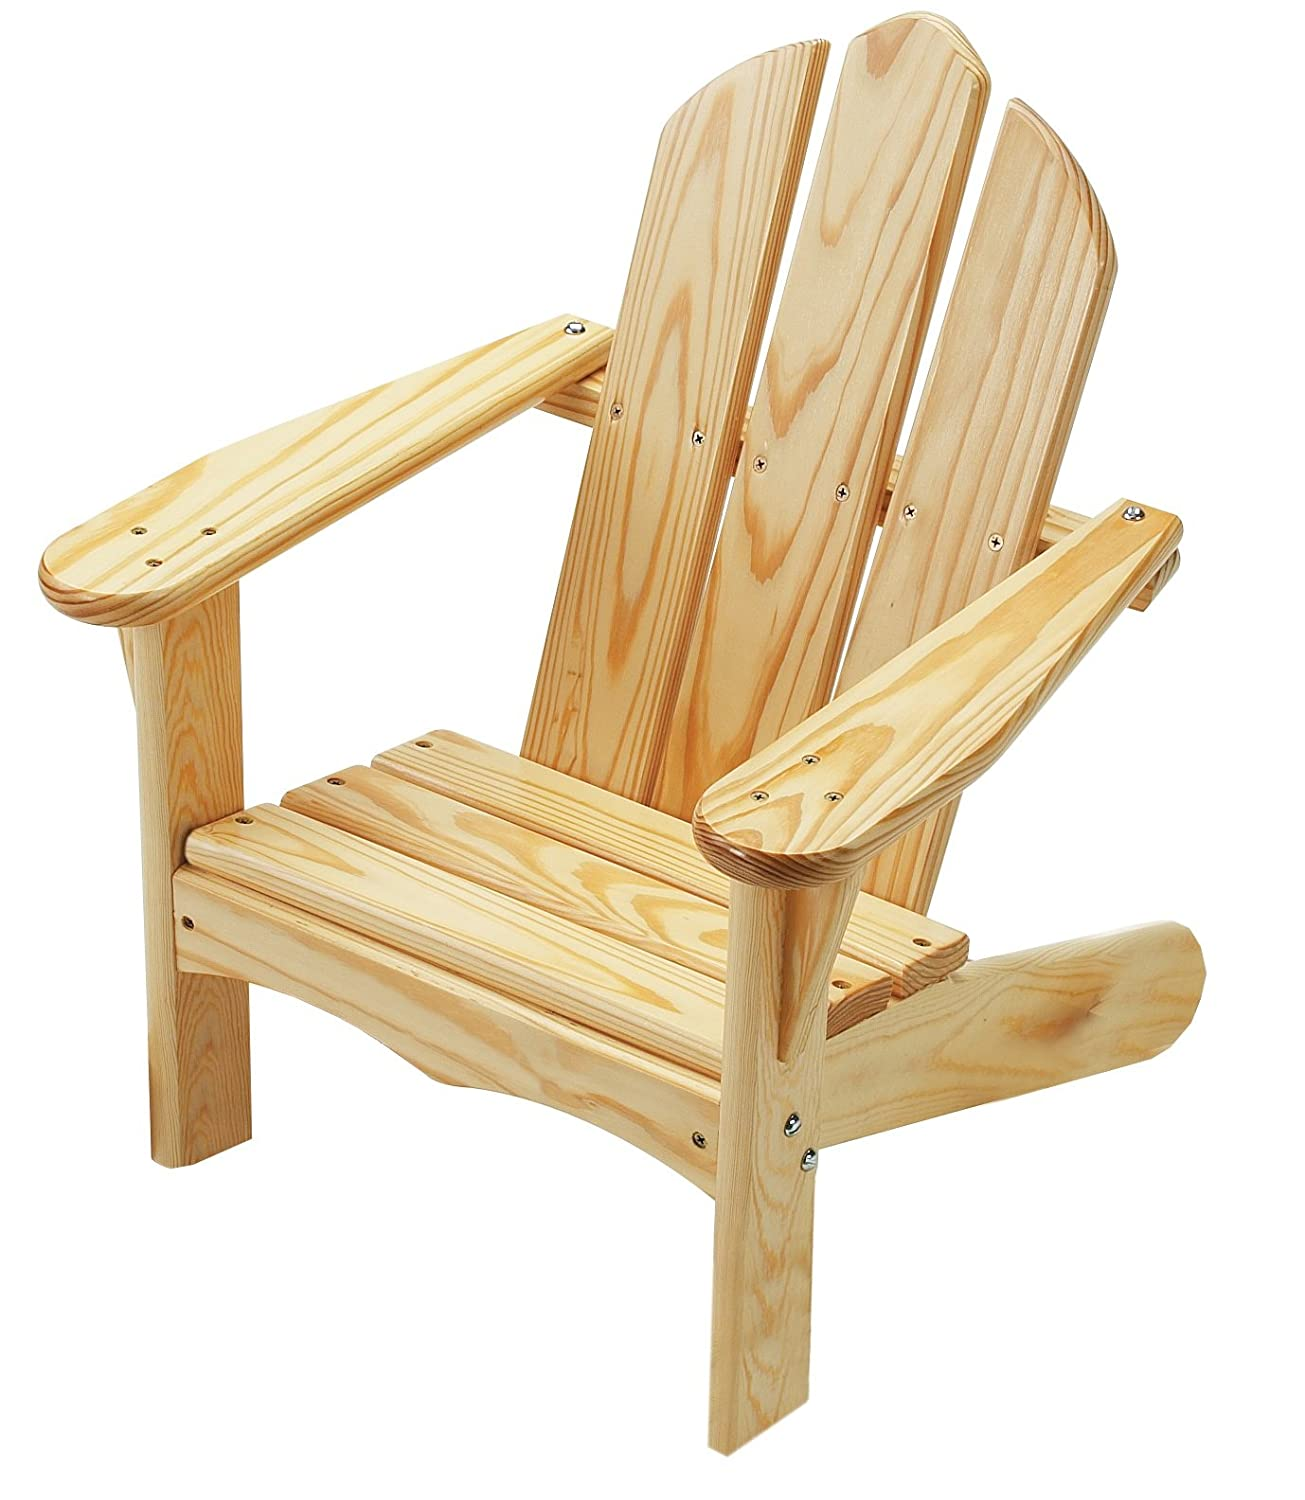 Amazon.com Little Colorado Childu0027s Adirondack Chair- Unfinished Toys u0026 Games  sc 1 st  Amazon.com & Amazon.com: Little Colorado Childu0027s Adirondack Chair- Unfinished ...